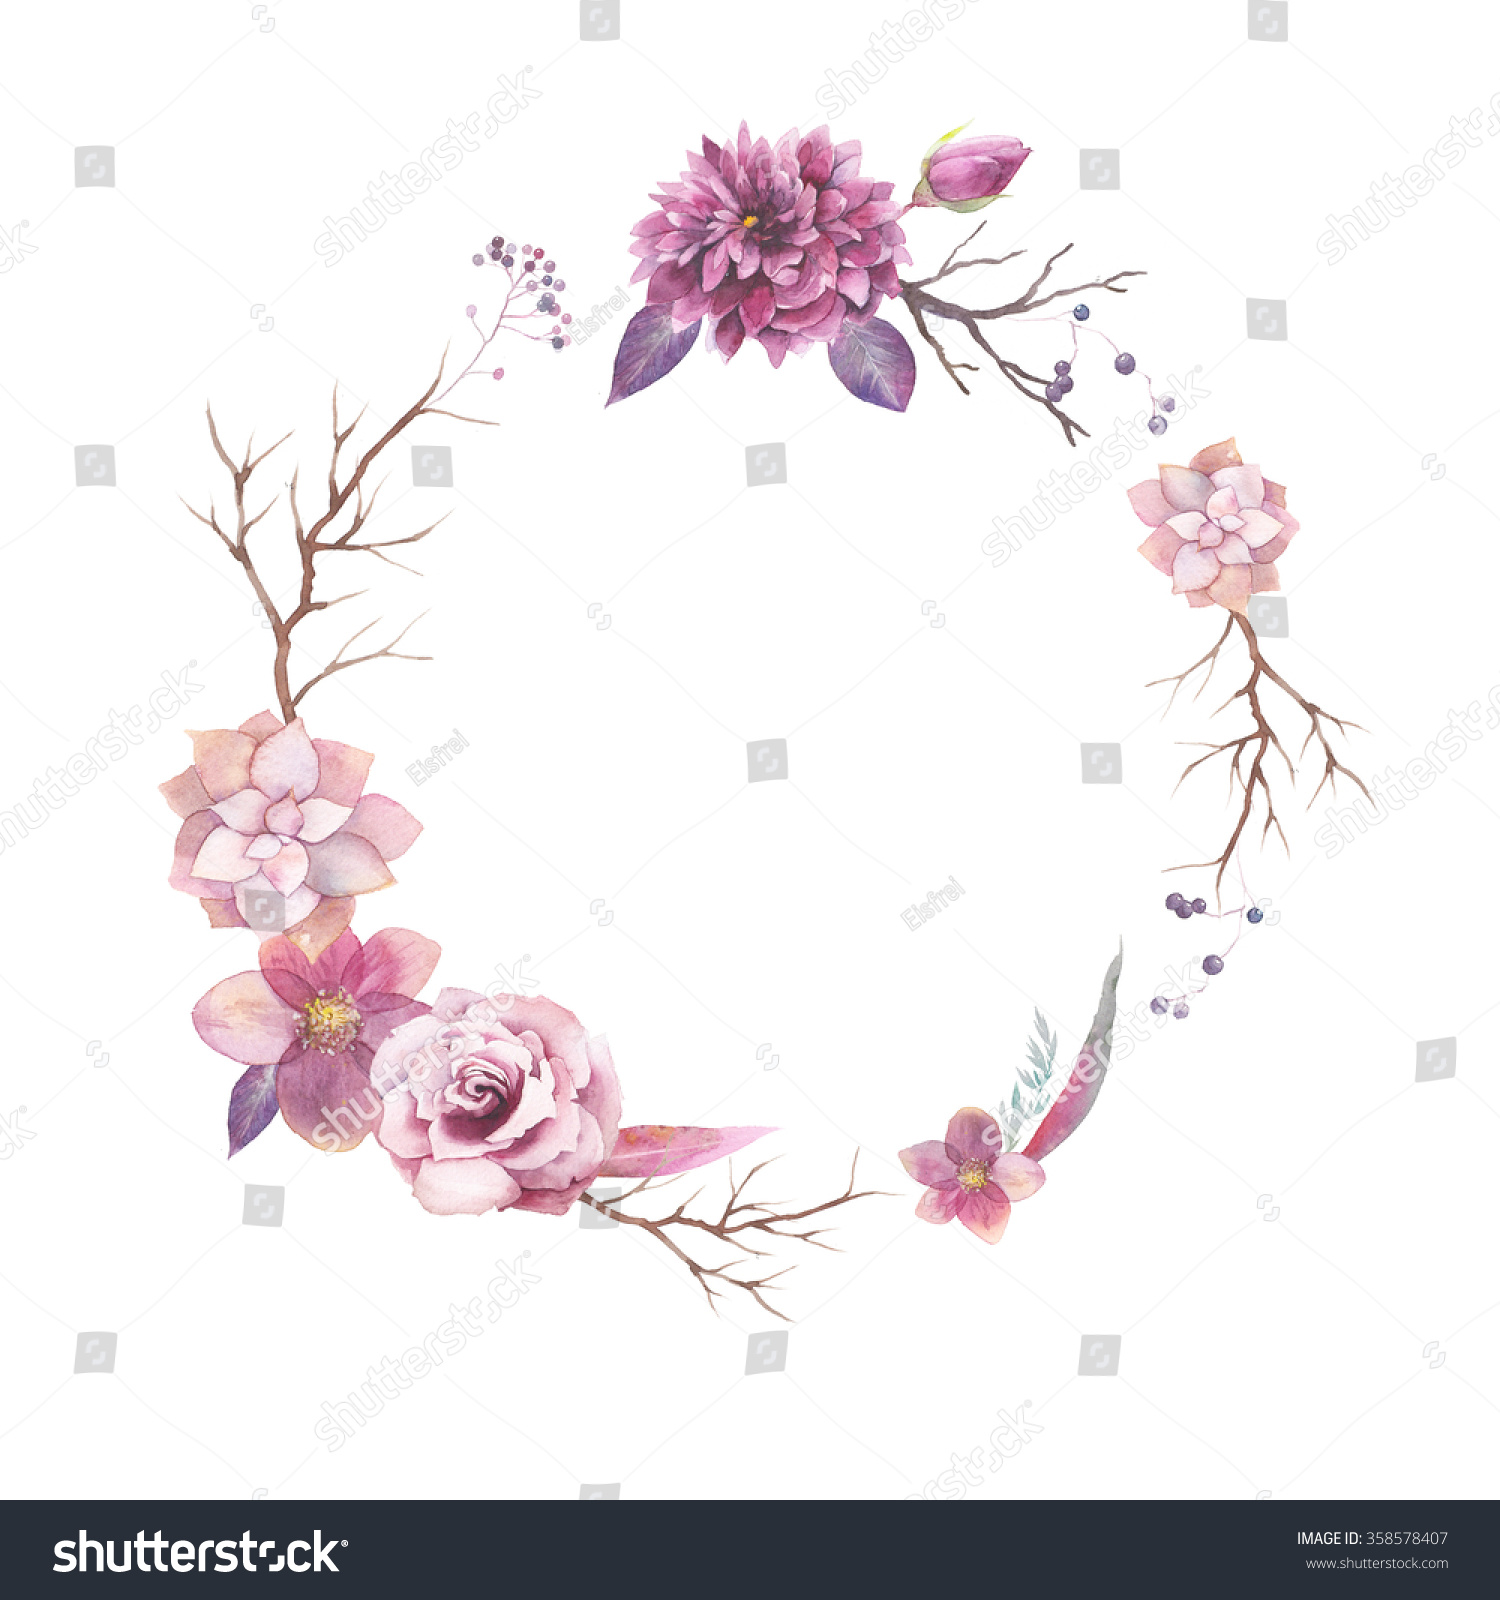 Watercolor Floral Wreath Isolated On White Stockillustration 358578407